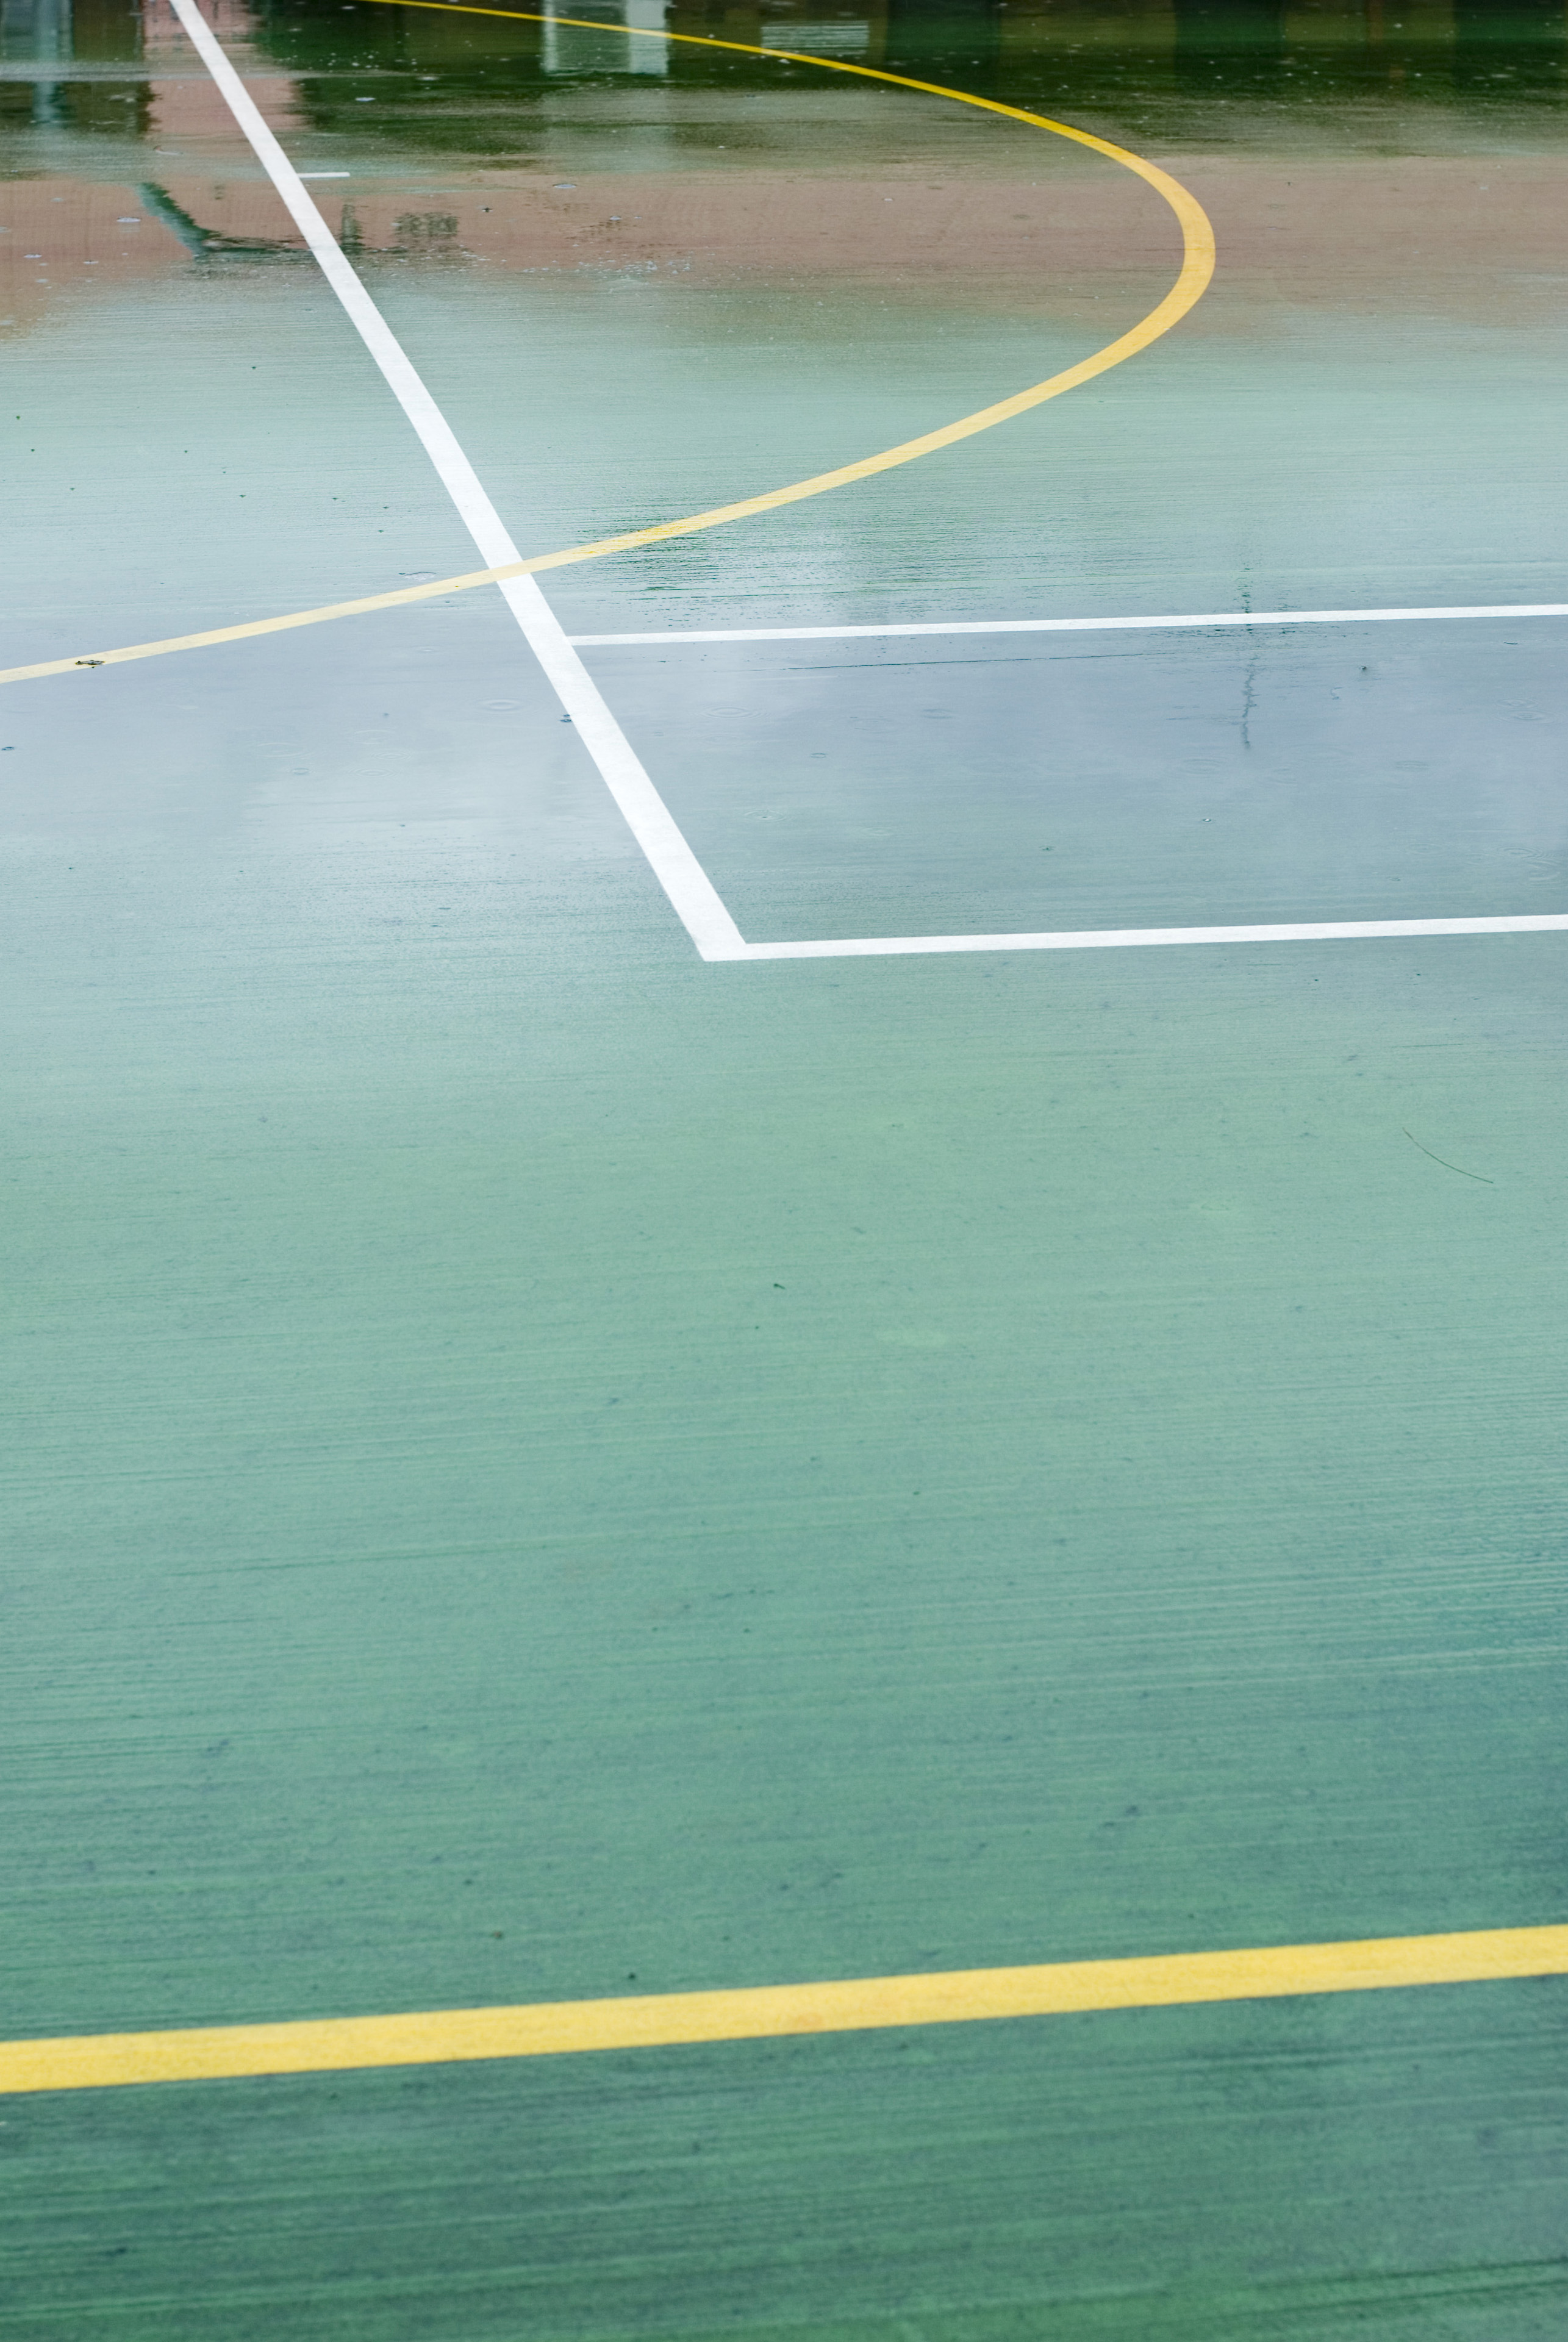 The corner of a tennis or soccer hard court painted on the ground